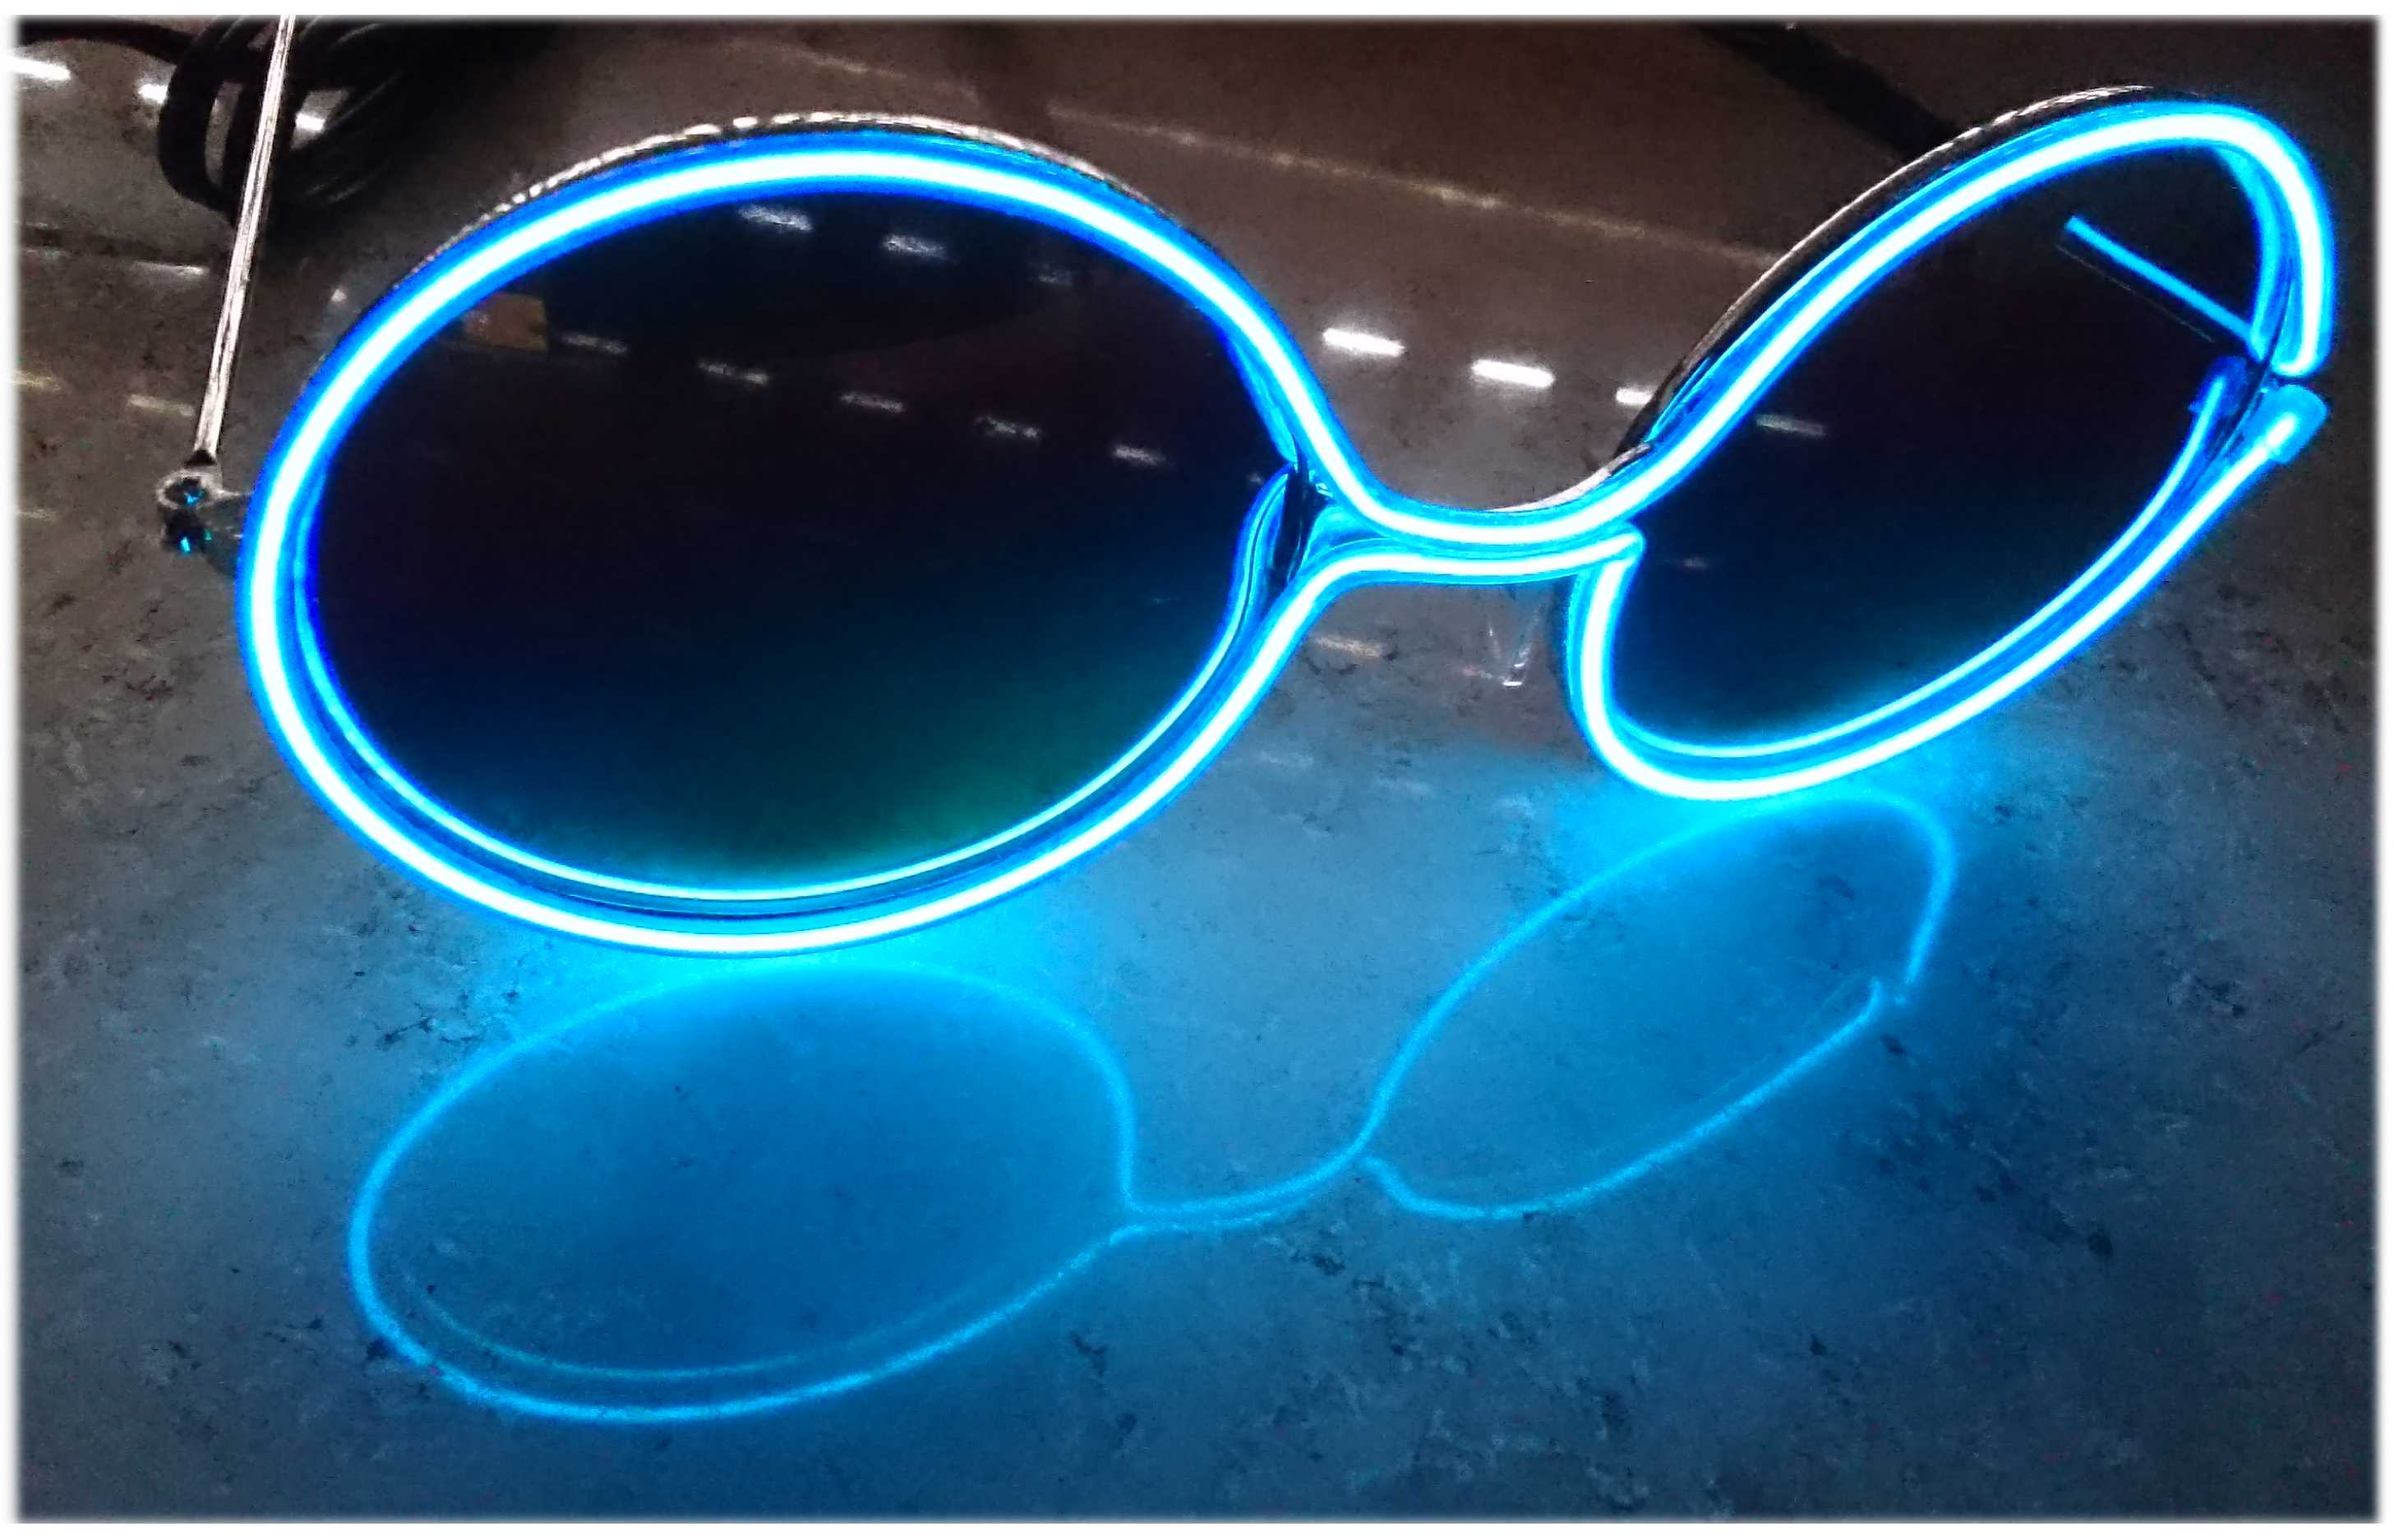 leds-blink.de - Retro sun glasses EL light-colored party glasses ...